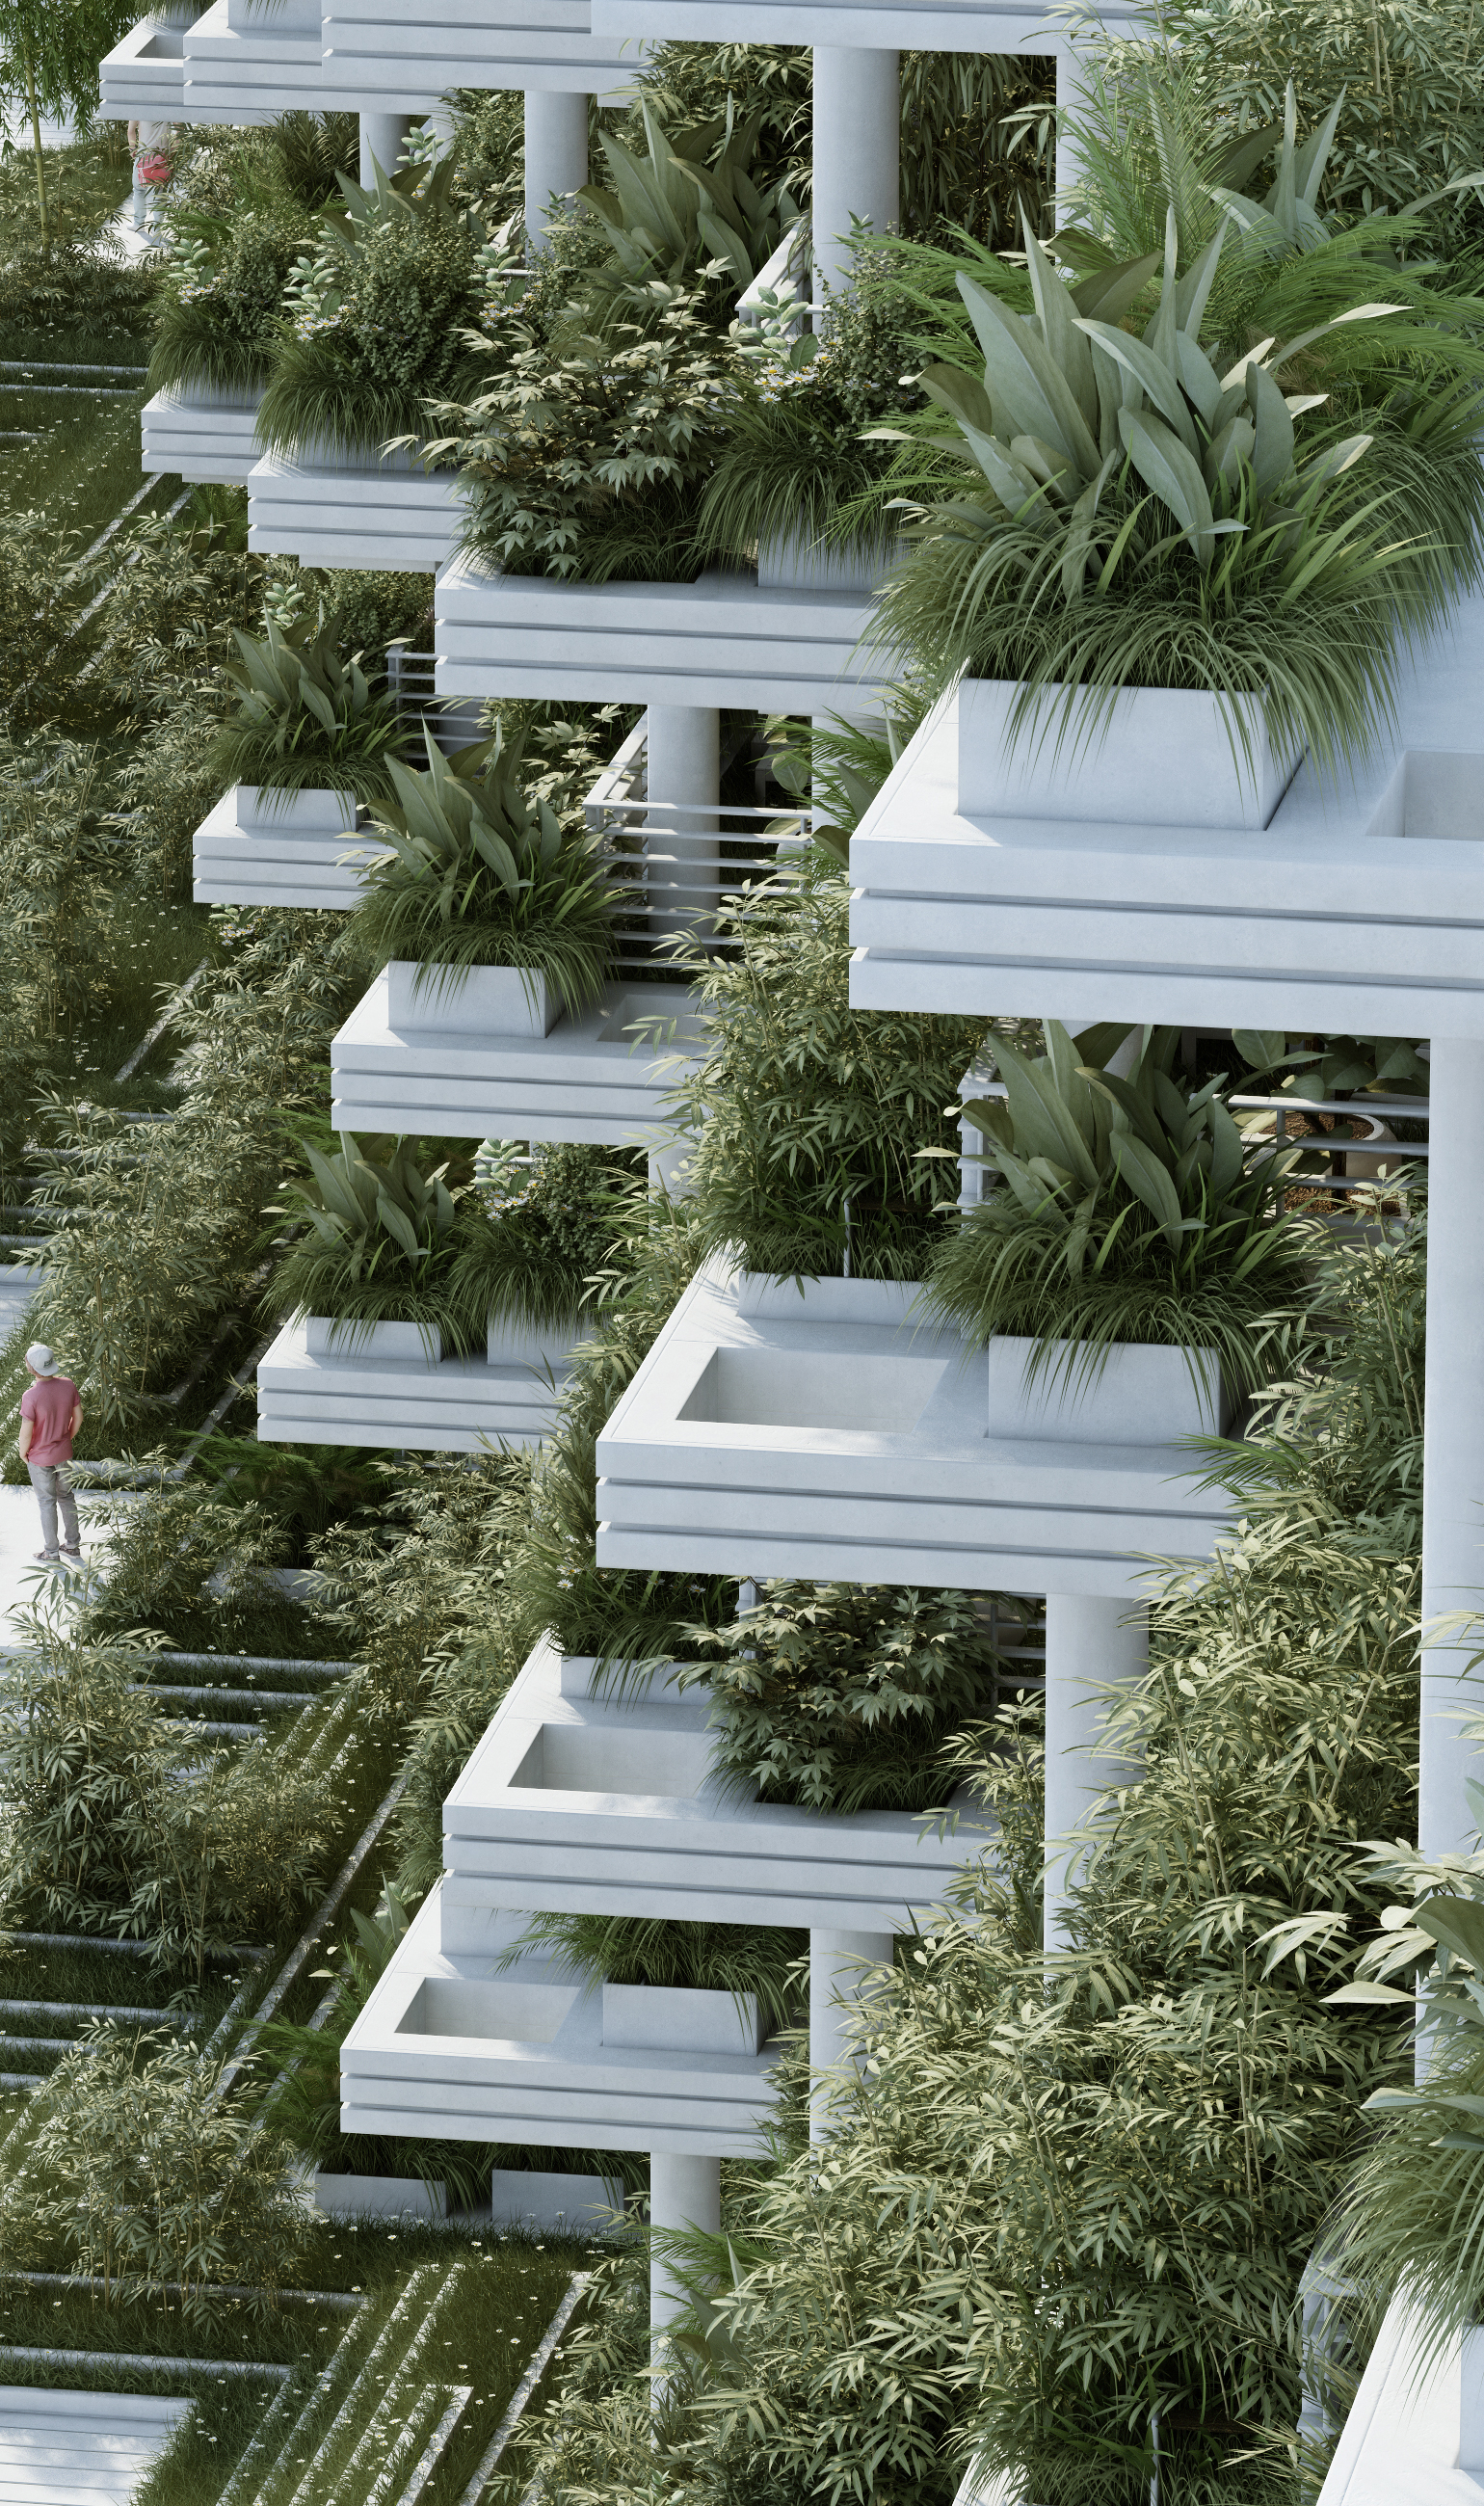 Gallery Of Penda Designs Sky Villas With Vertical Gardens